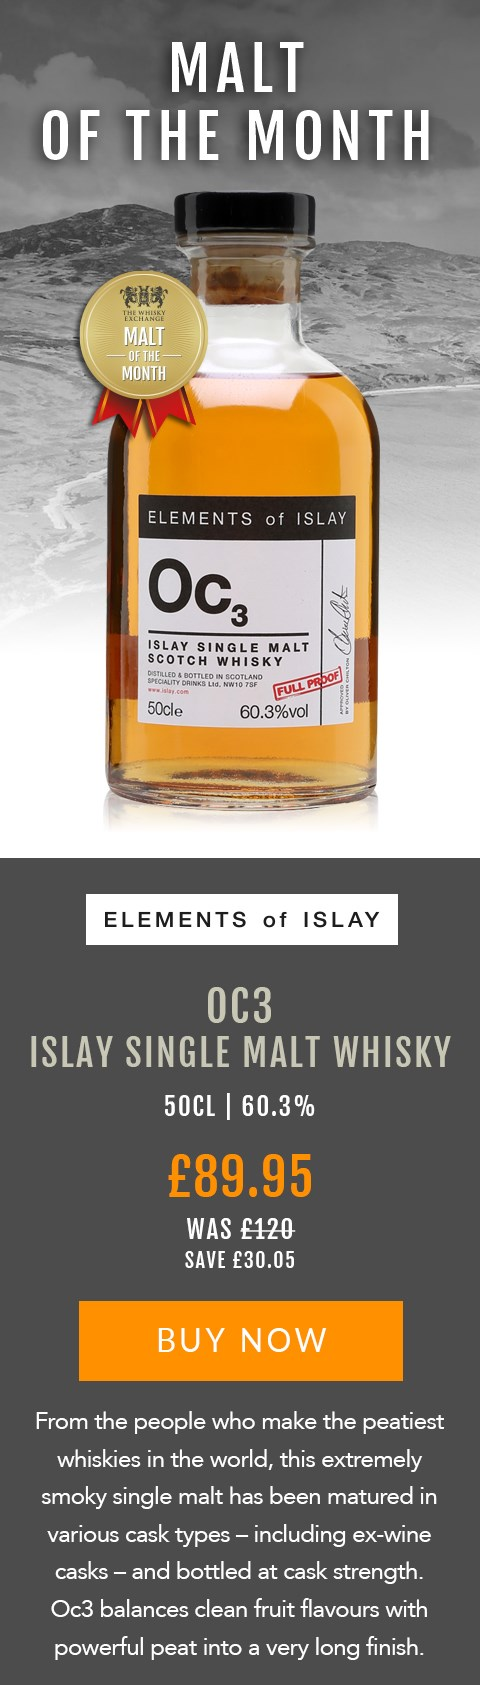 MALT OF THE MONTH  Elements of Islay Oc3  50cl | 60.3%  £89.95  WAS £120 SAVE £30.05  BUY NOW > https://www.thewhiskyexchange.com/feature/maltofthemonth  From the people who make the peatiest whiskies in the world, this extremely smoky single malt has been matured in various cask types – including ex-wine casks – and bottled at cask strength. Oc3 balances clean fruit flavours with powerful peat into a very long finish.